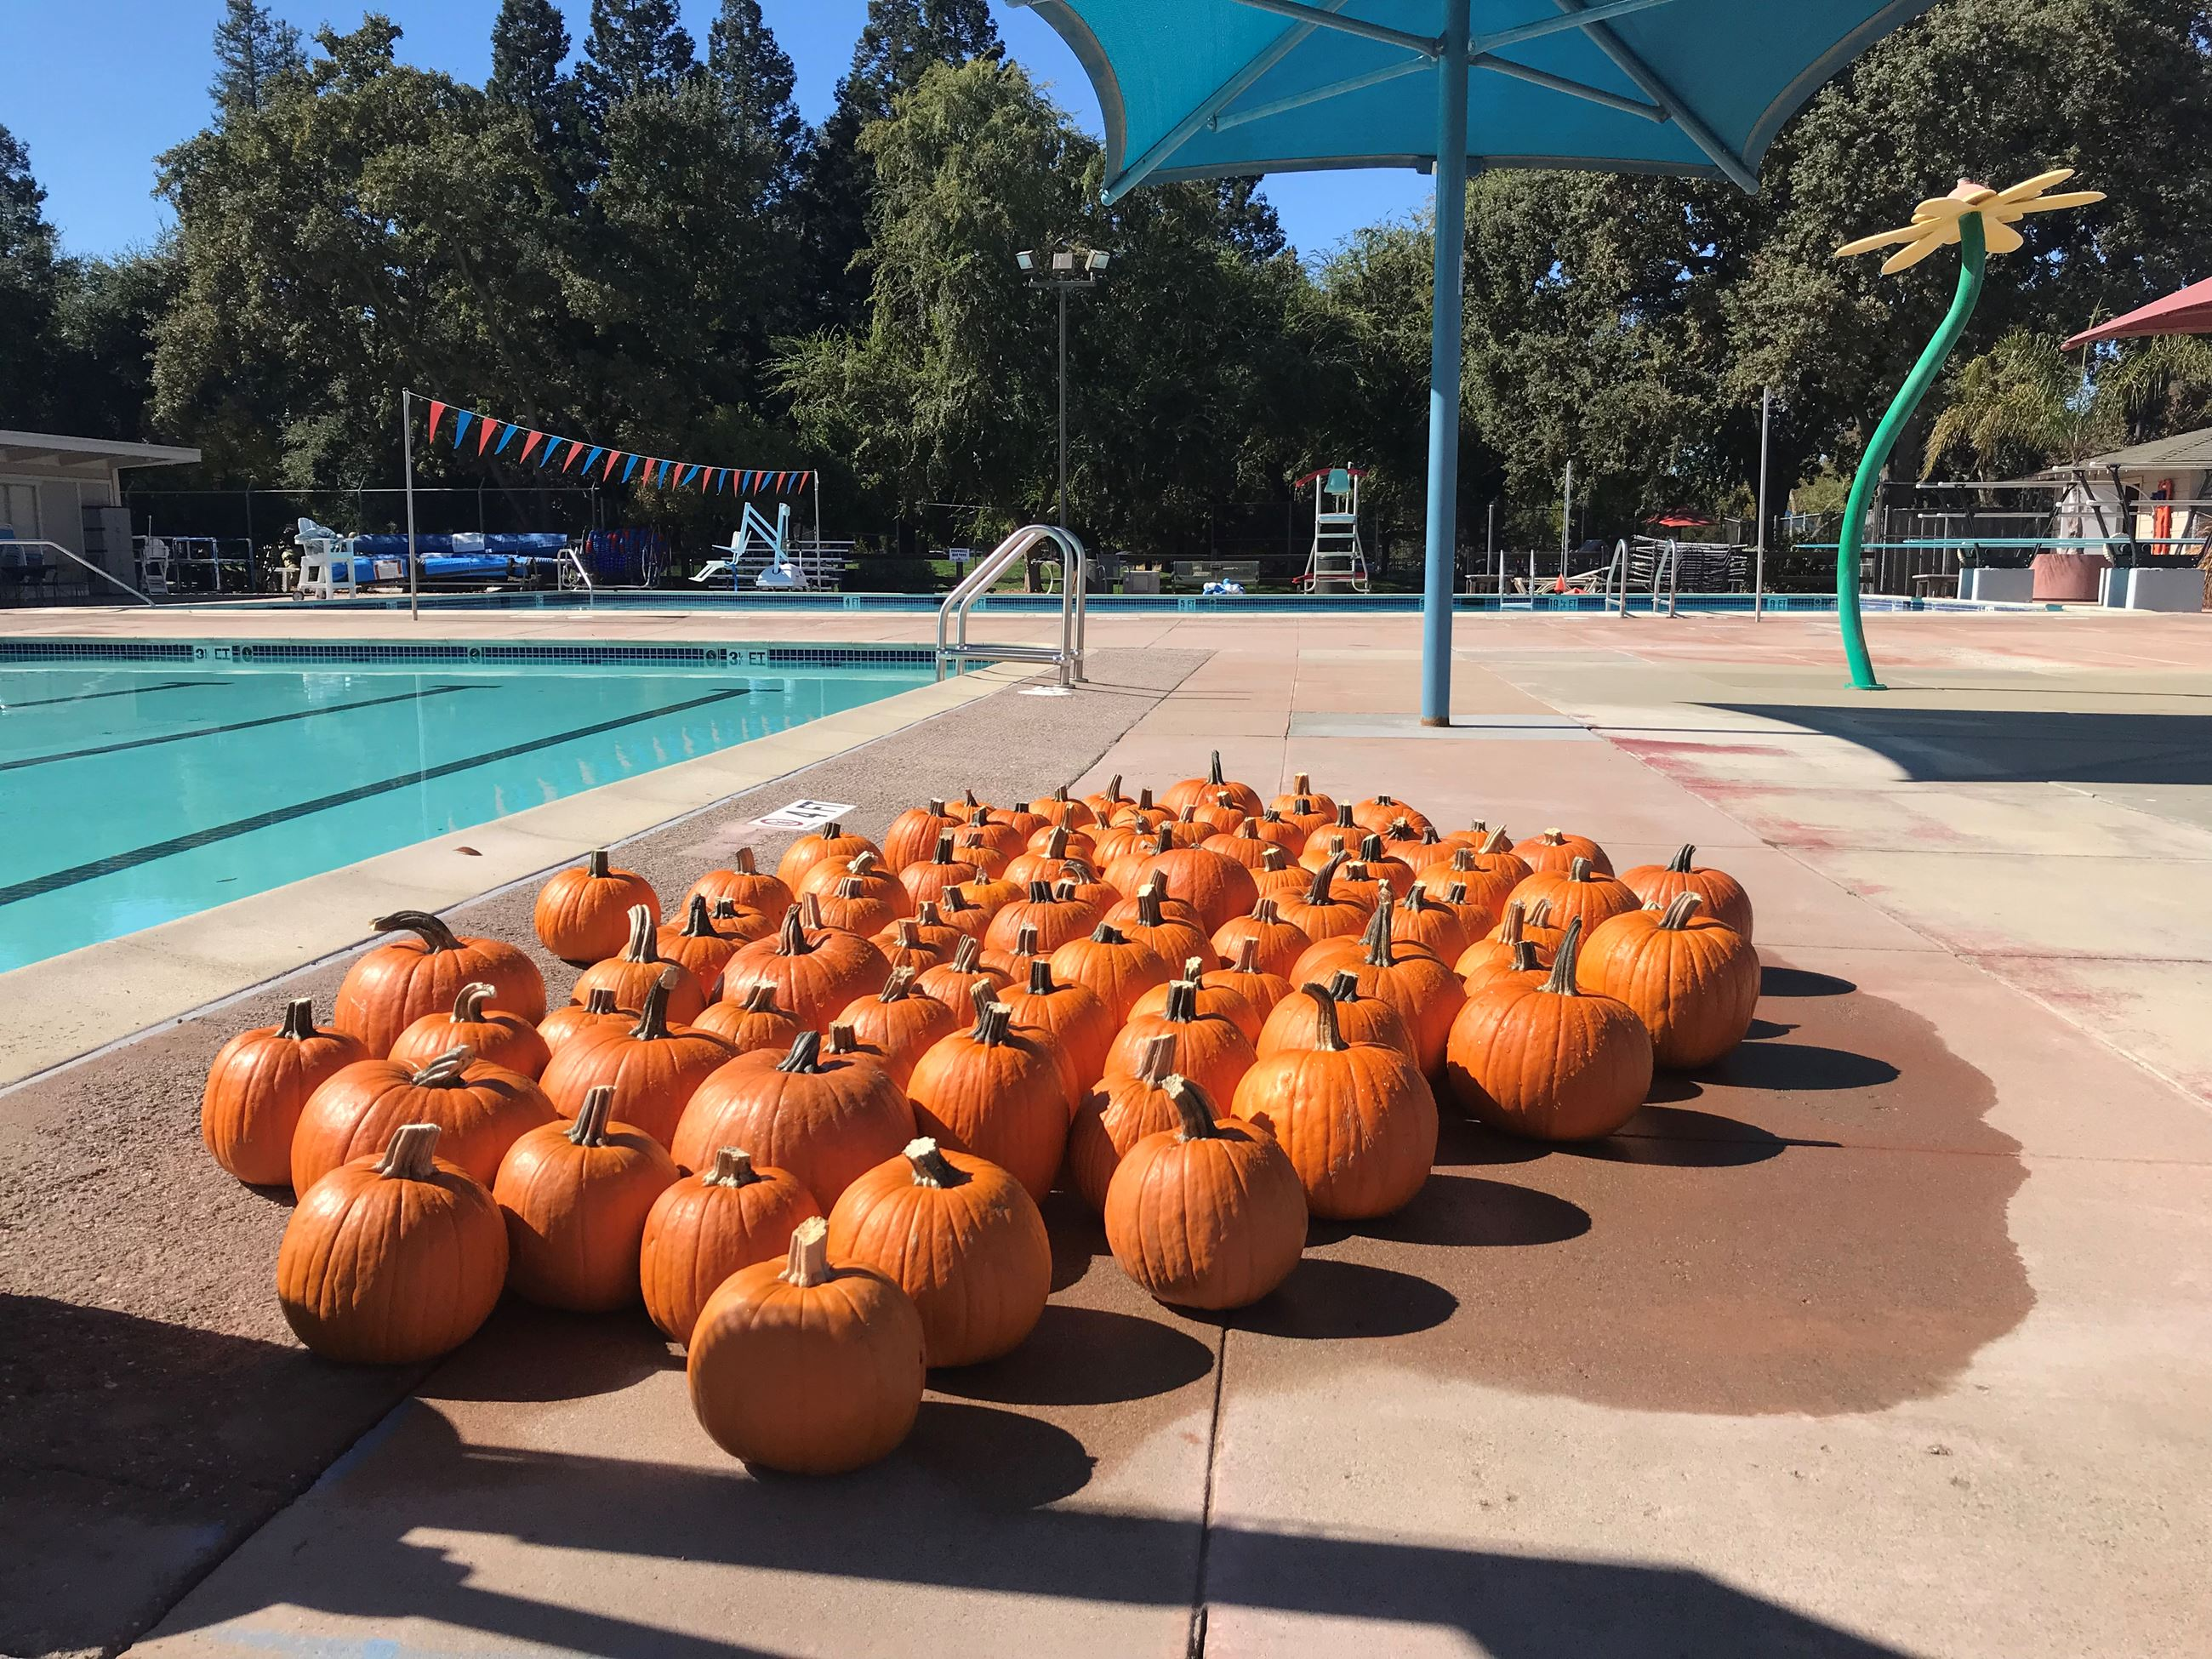 Pumpkins on the side of the pool